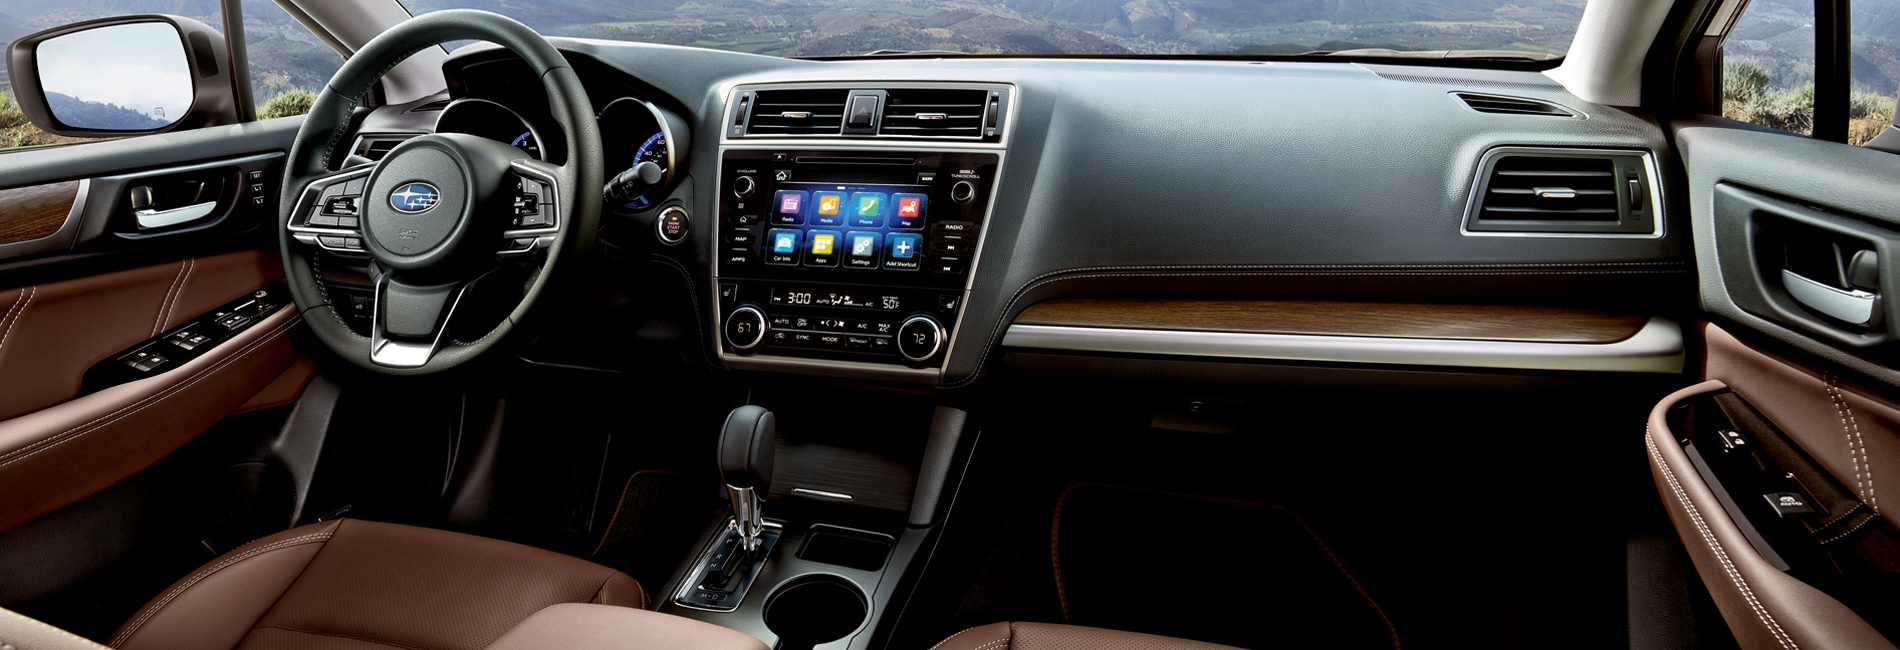 Subaru Outback Interior Vehicle Features